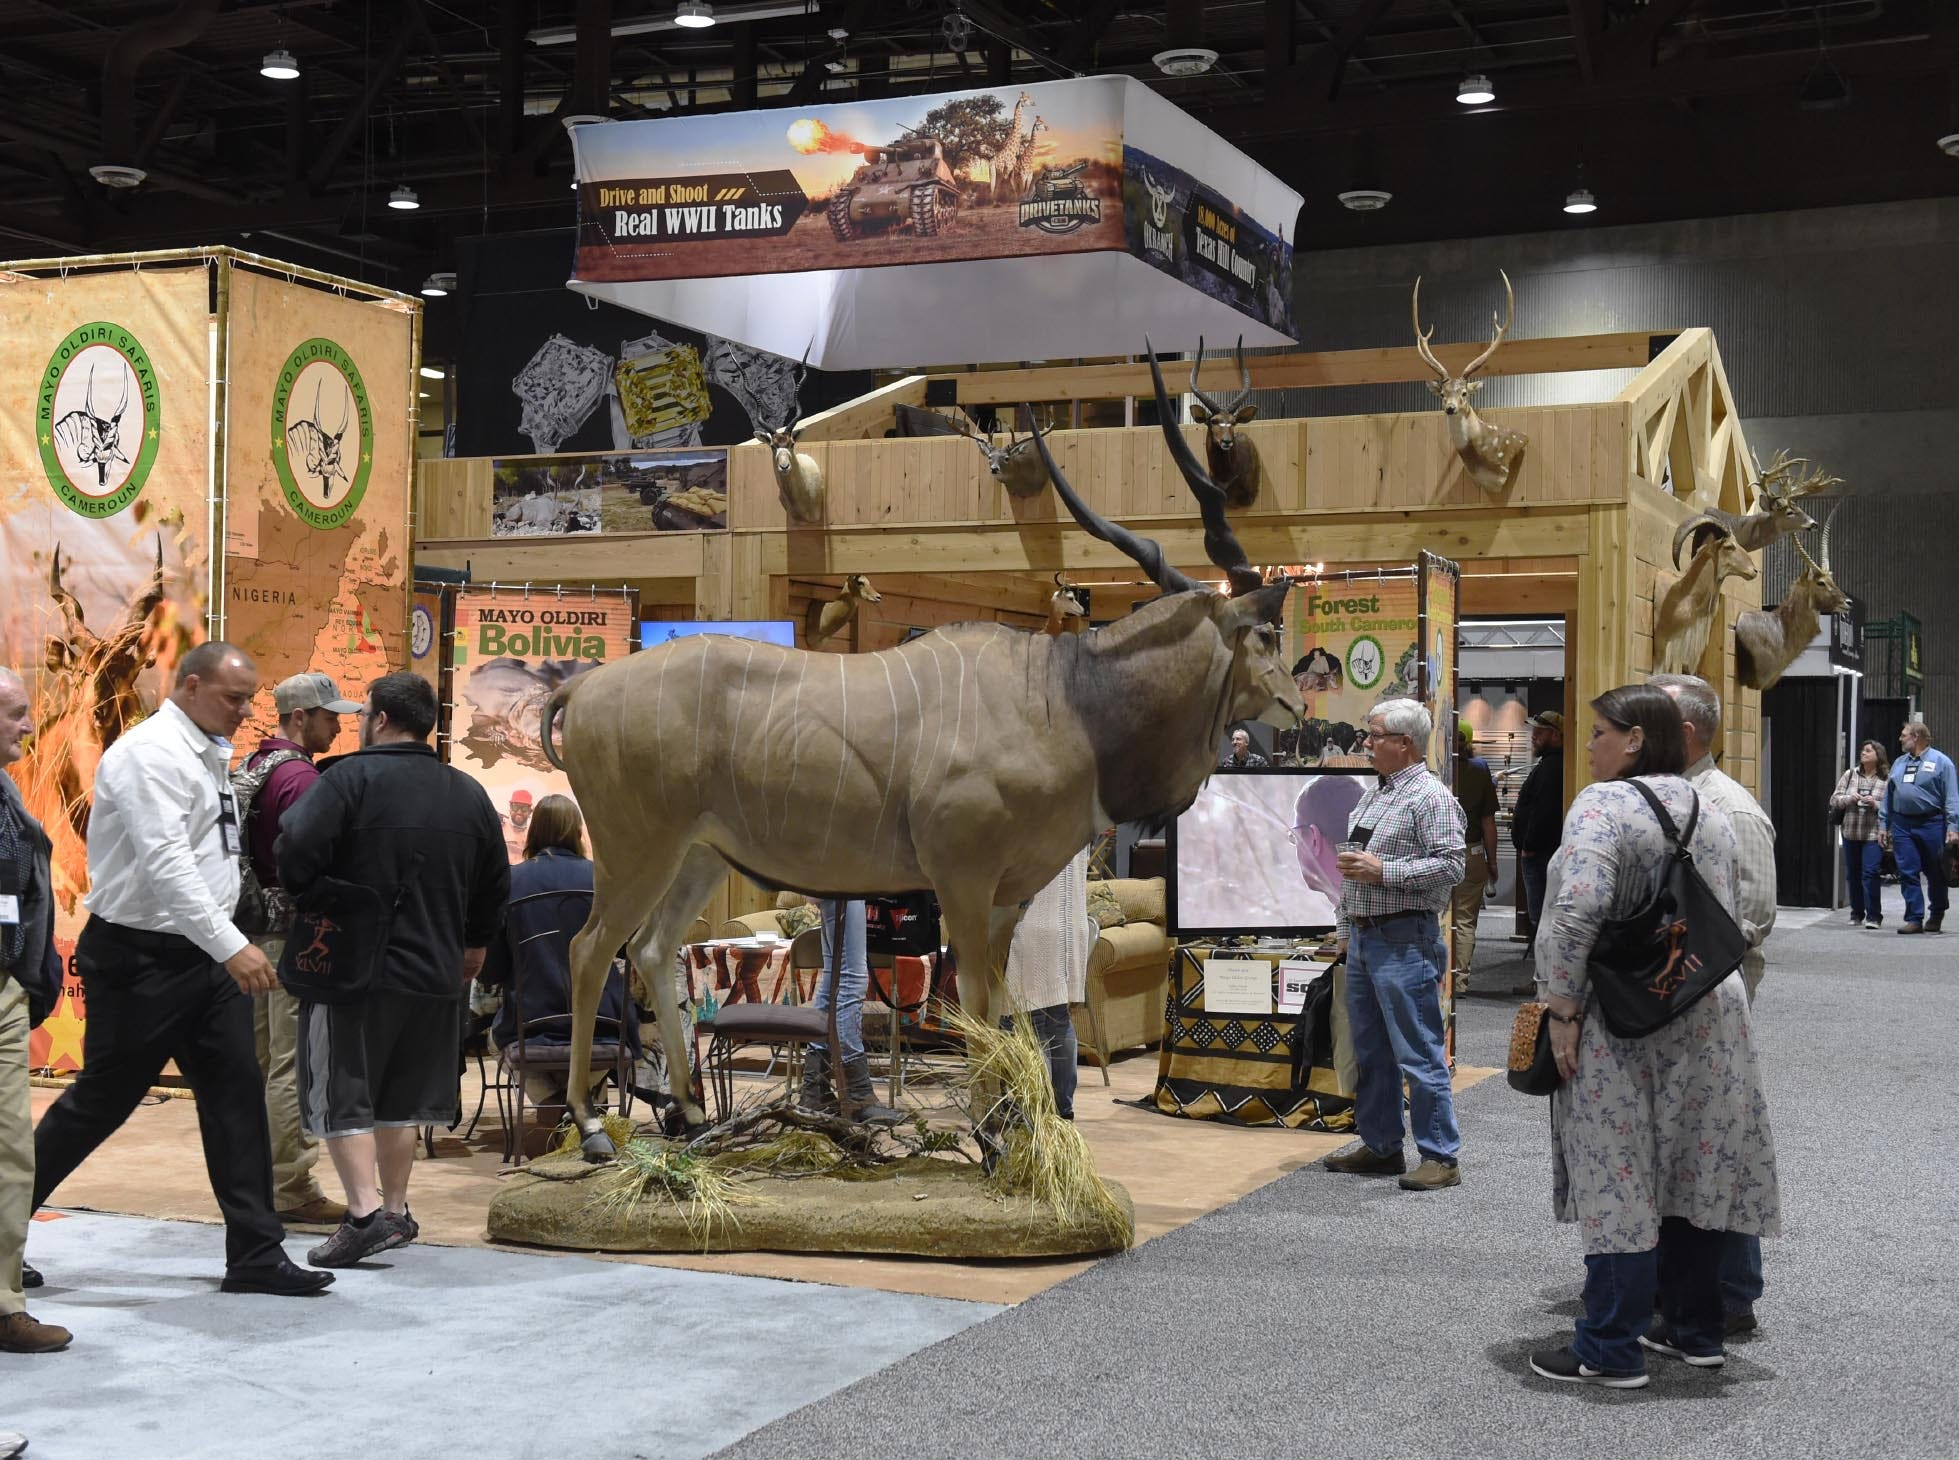 Image from opening day of SCI Convention at the Reno-Sparks Convention Center on Jan. 9, 2019.